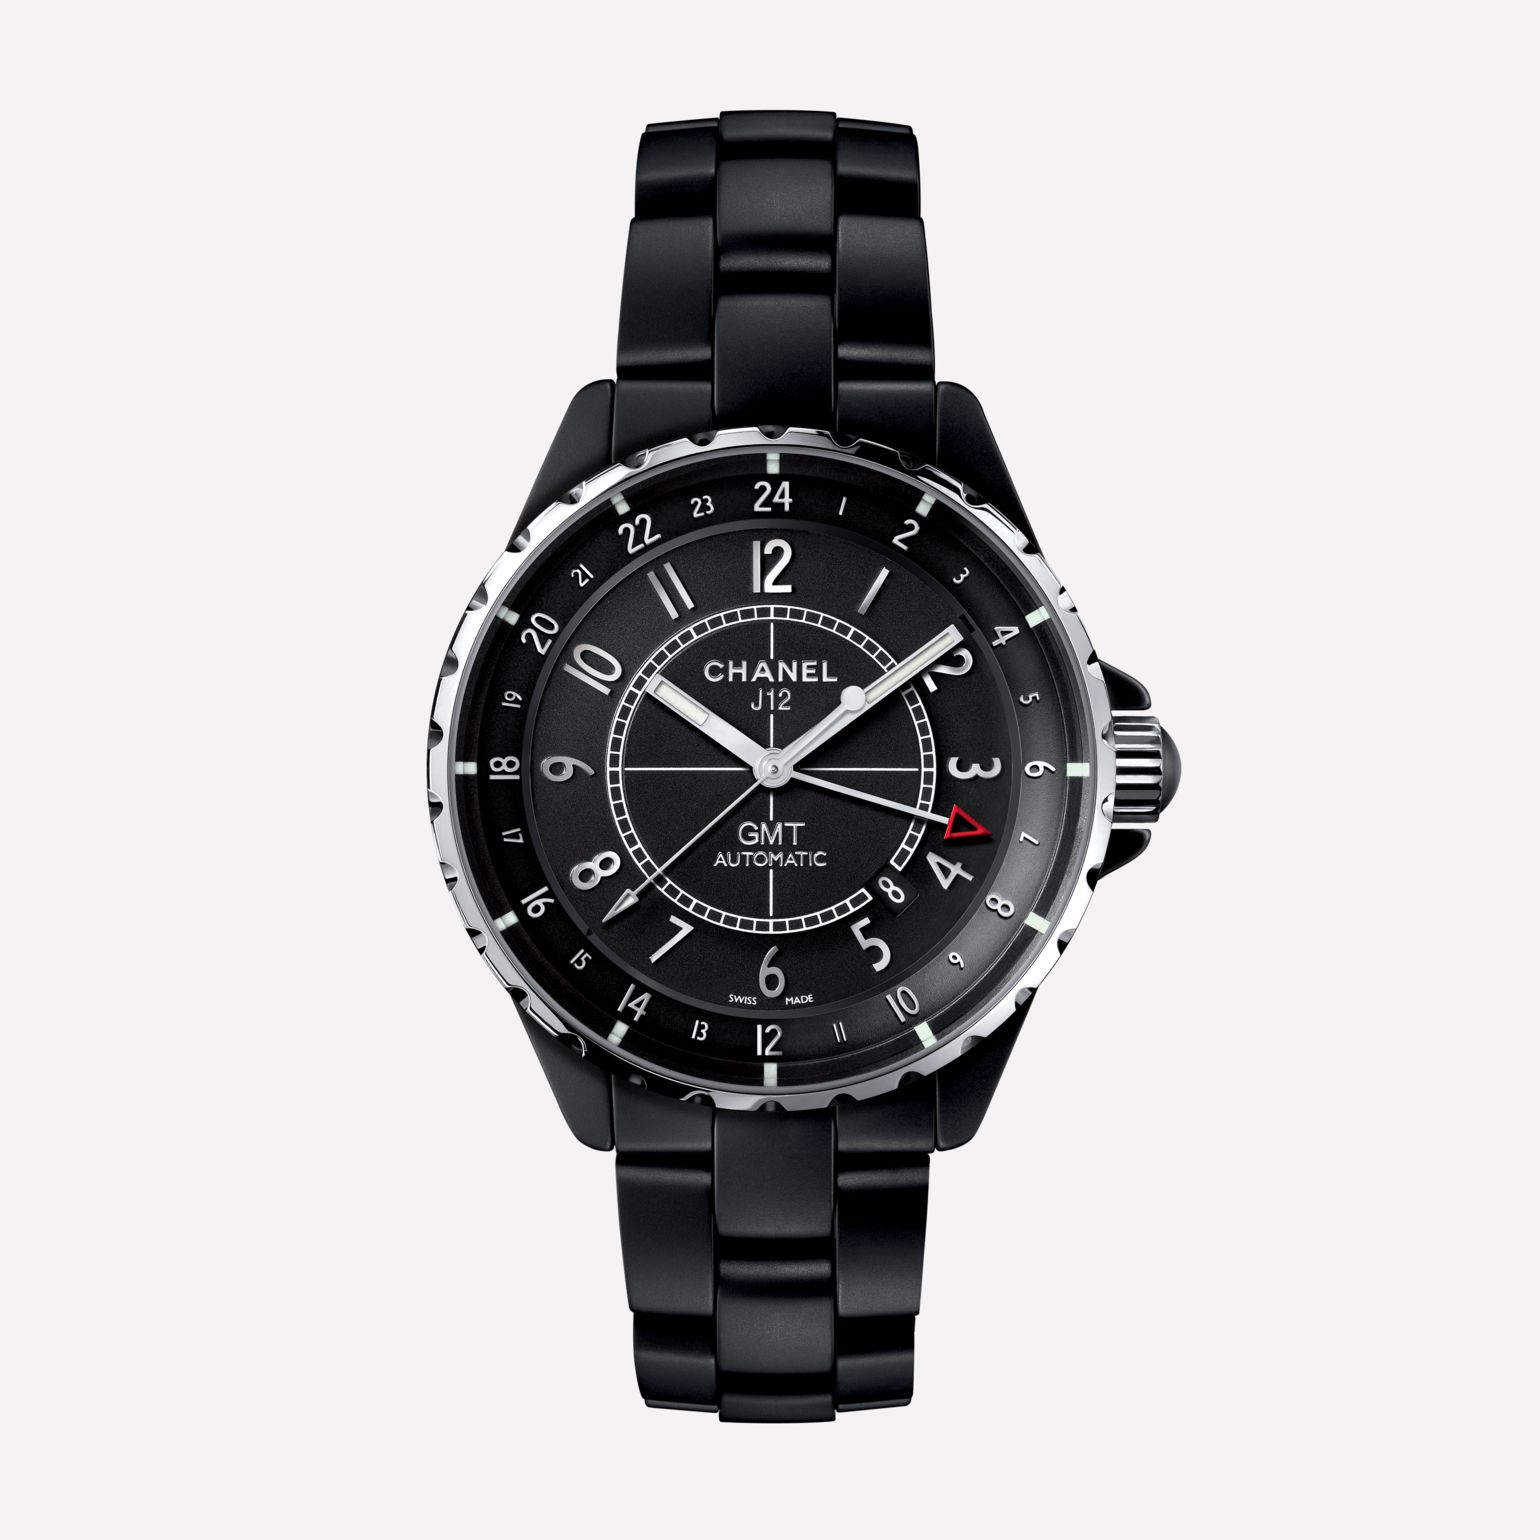 J12 GMT Matt black highly resistant ceramic and steel